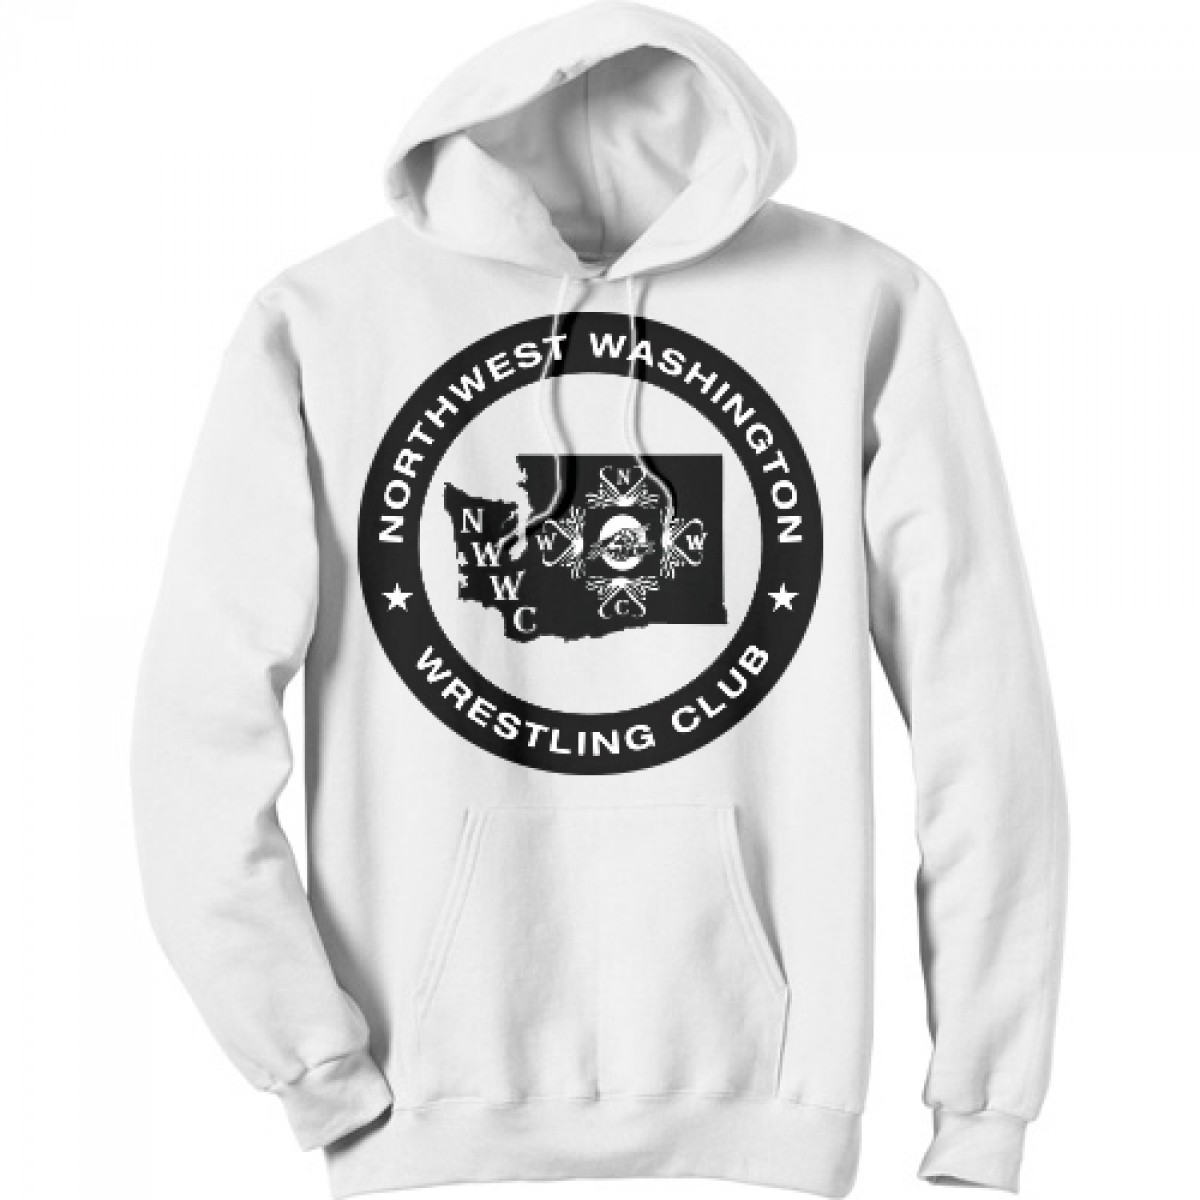 NWWC white hoodie with the main logo in black-White-YL